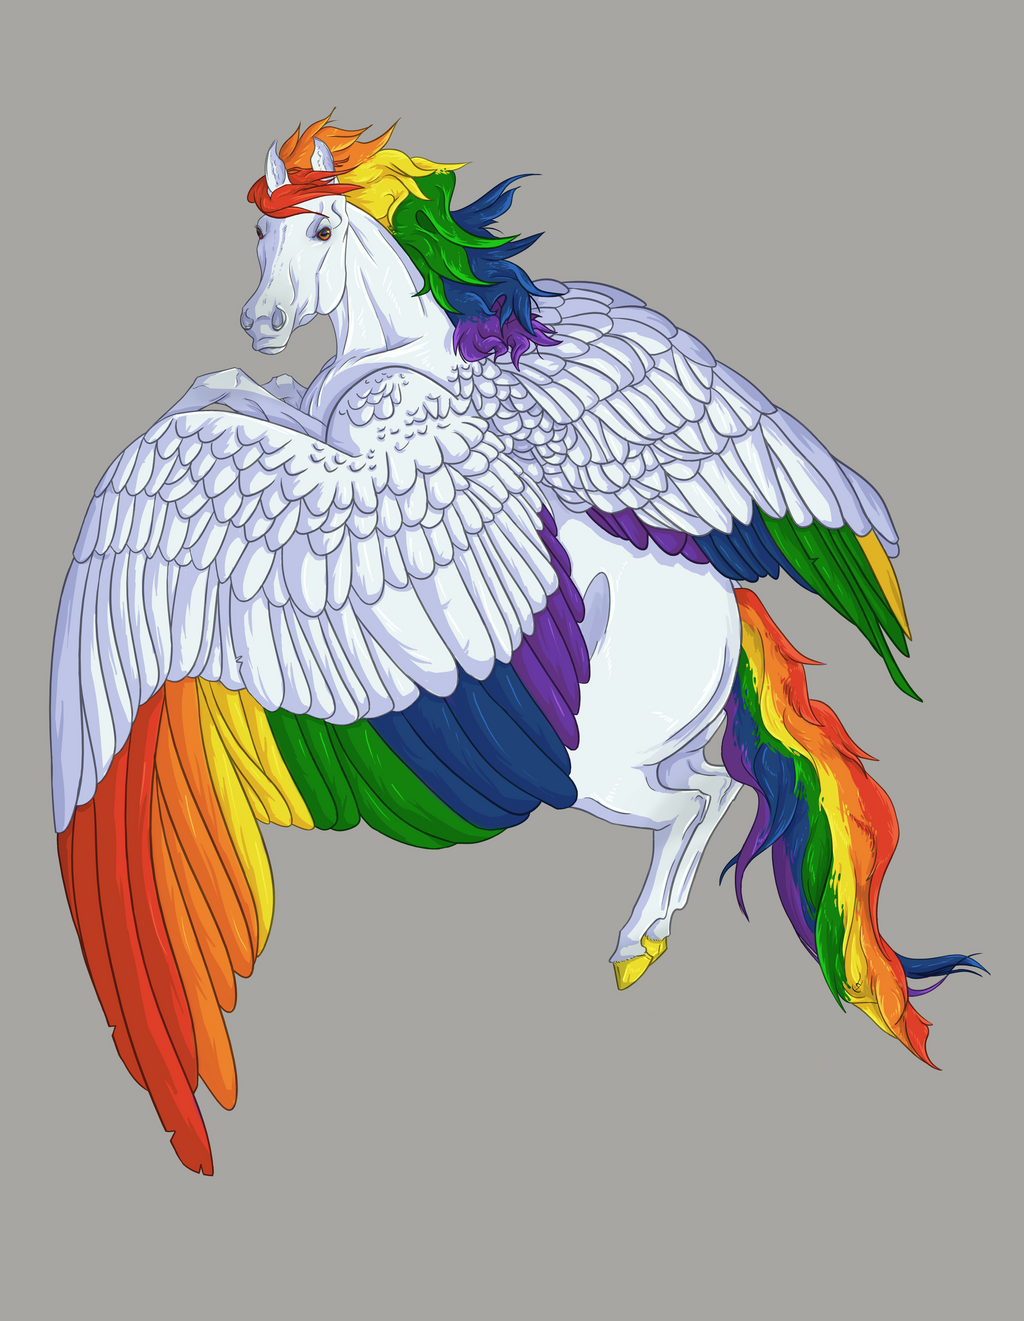 Caught Chasing the Rainbow by Blusl